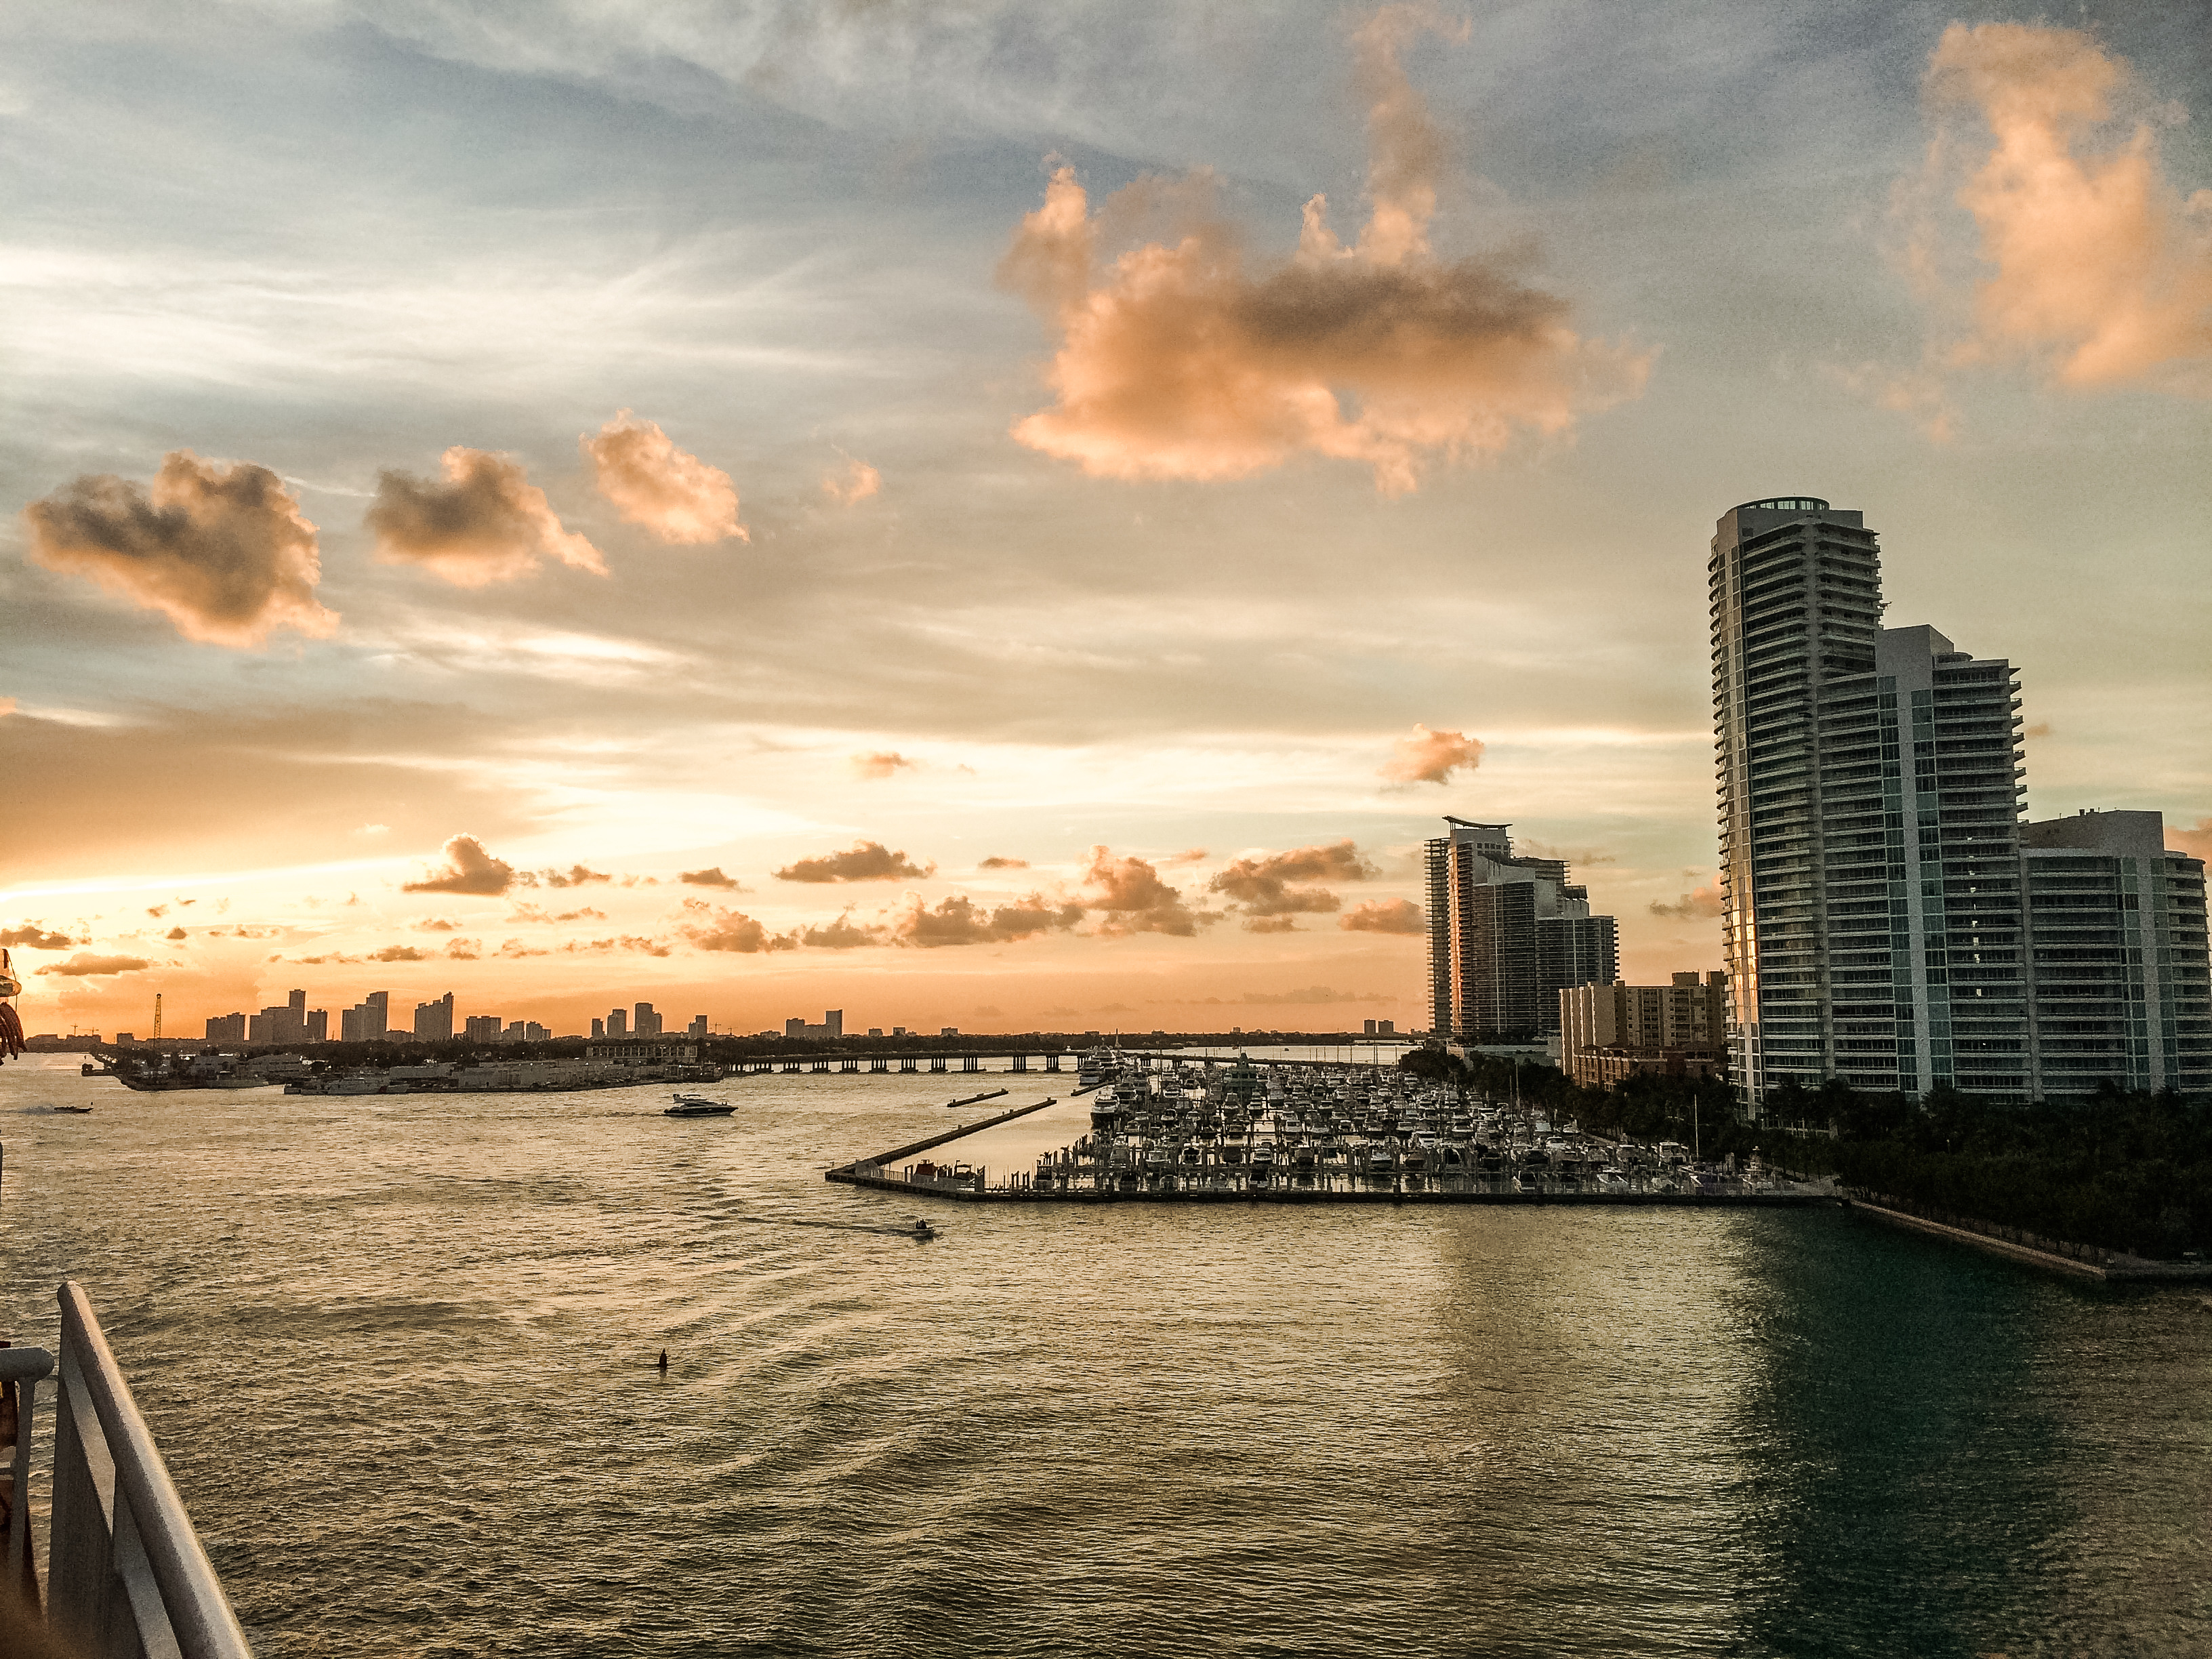 Miami sunset view from the ship